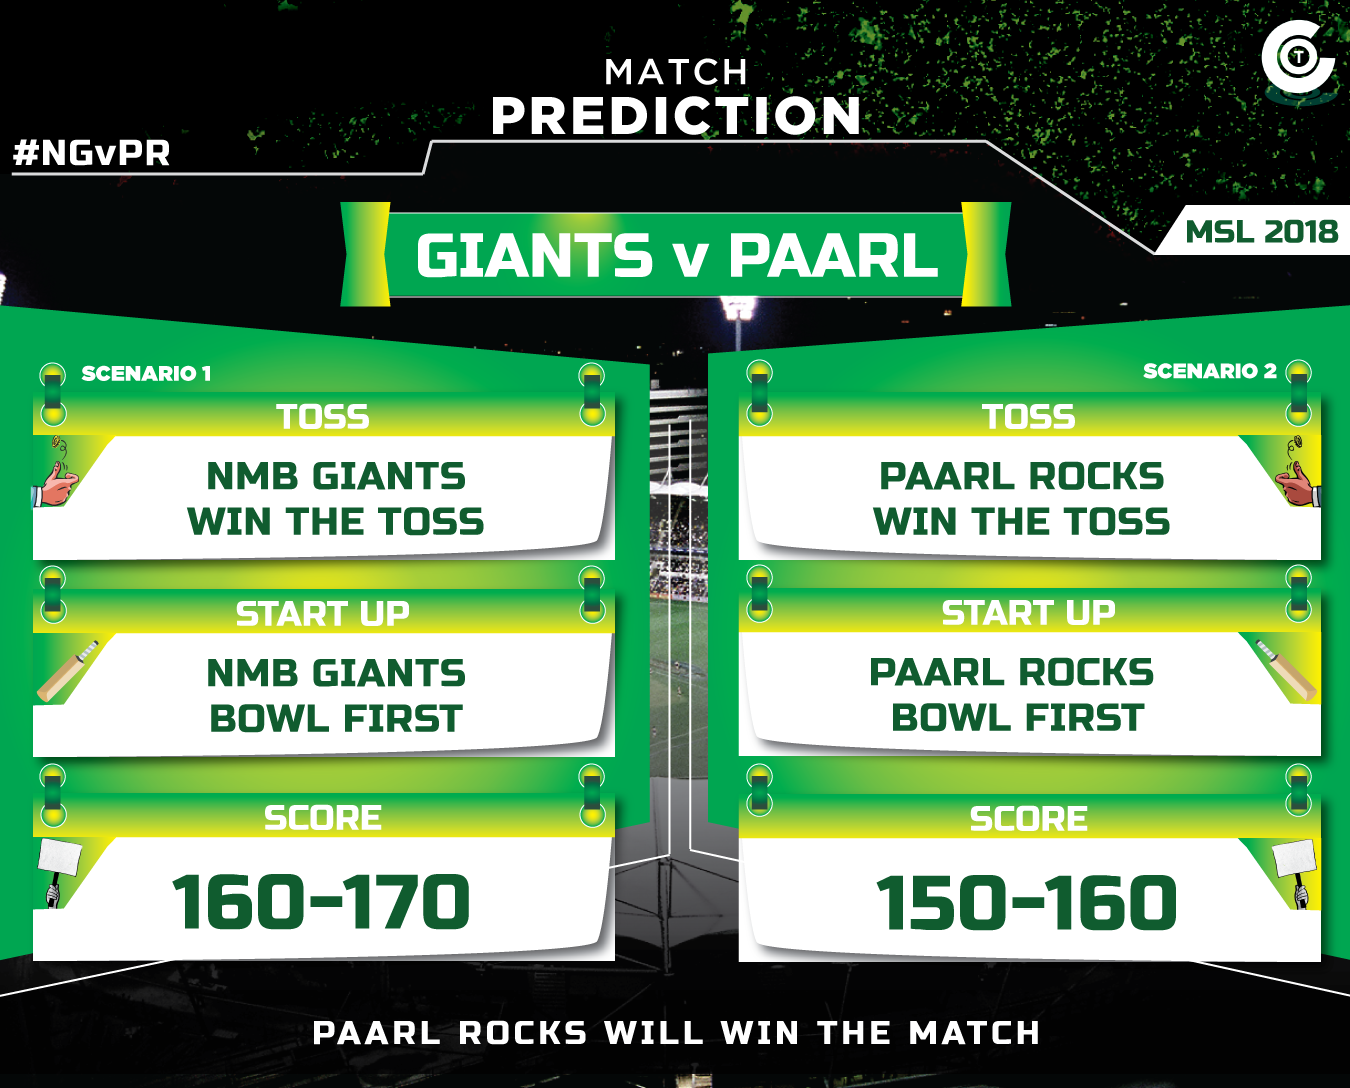 NBvPR-match-prediction-Nelson-Mandela-Bay-Giants-vs-Paarl-Rocks-Blitz-MSL-2018-match-prediction.jpg